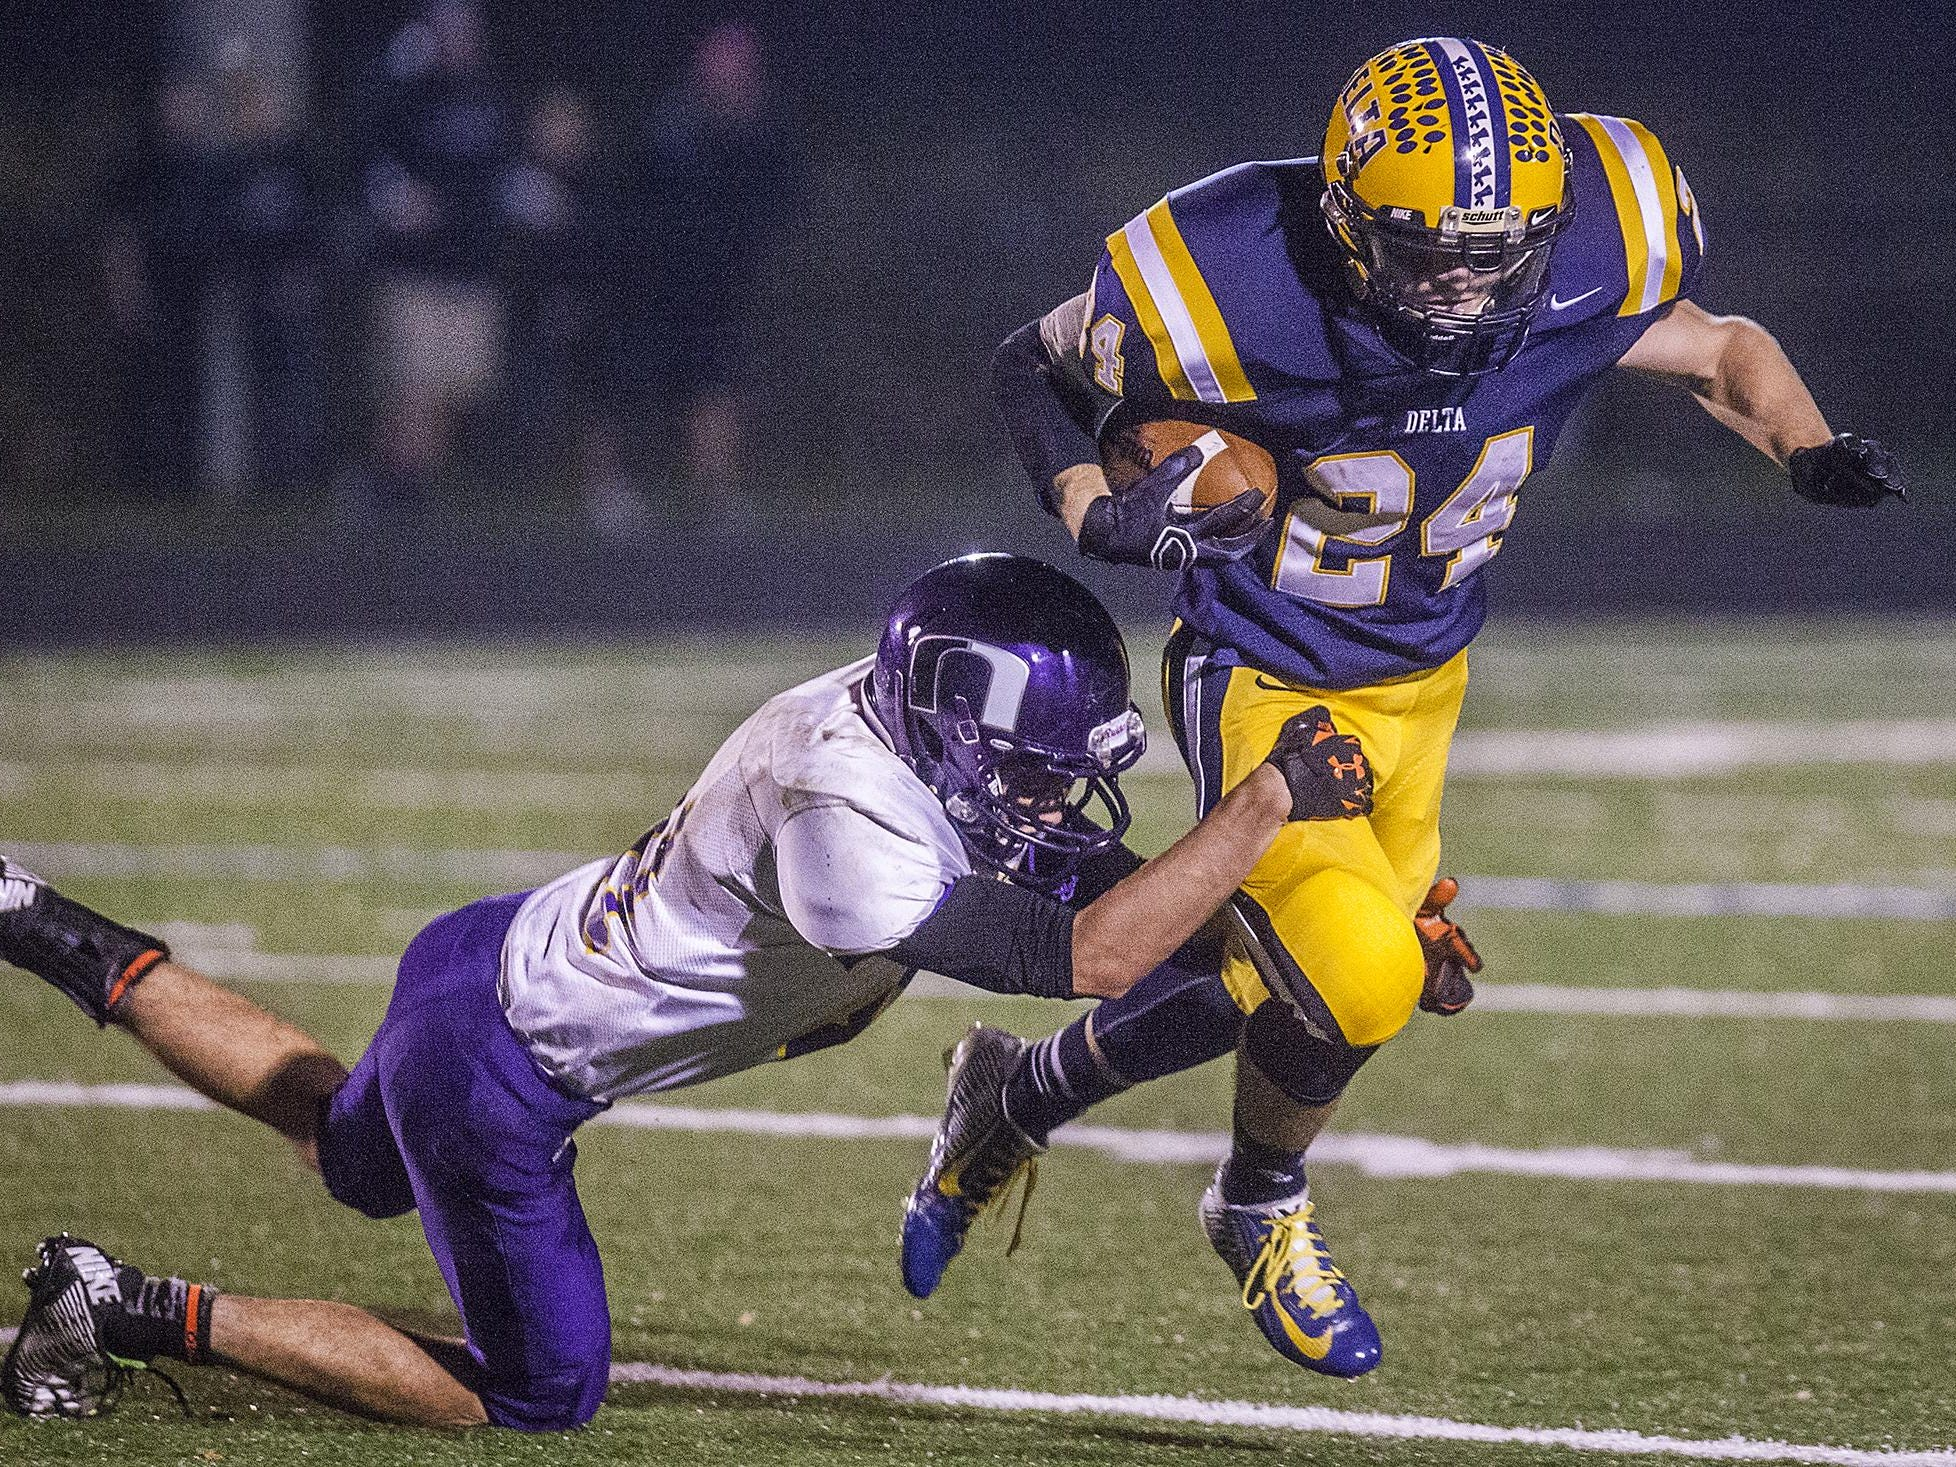 Delta's Zach Mills, right, tries to get past a Northwestern defensive player during a 2014 sectional game.